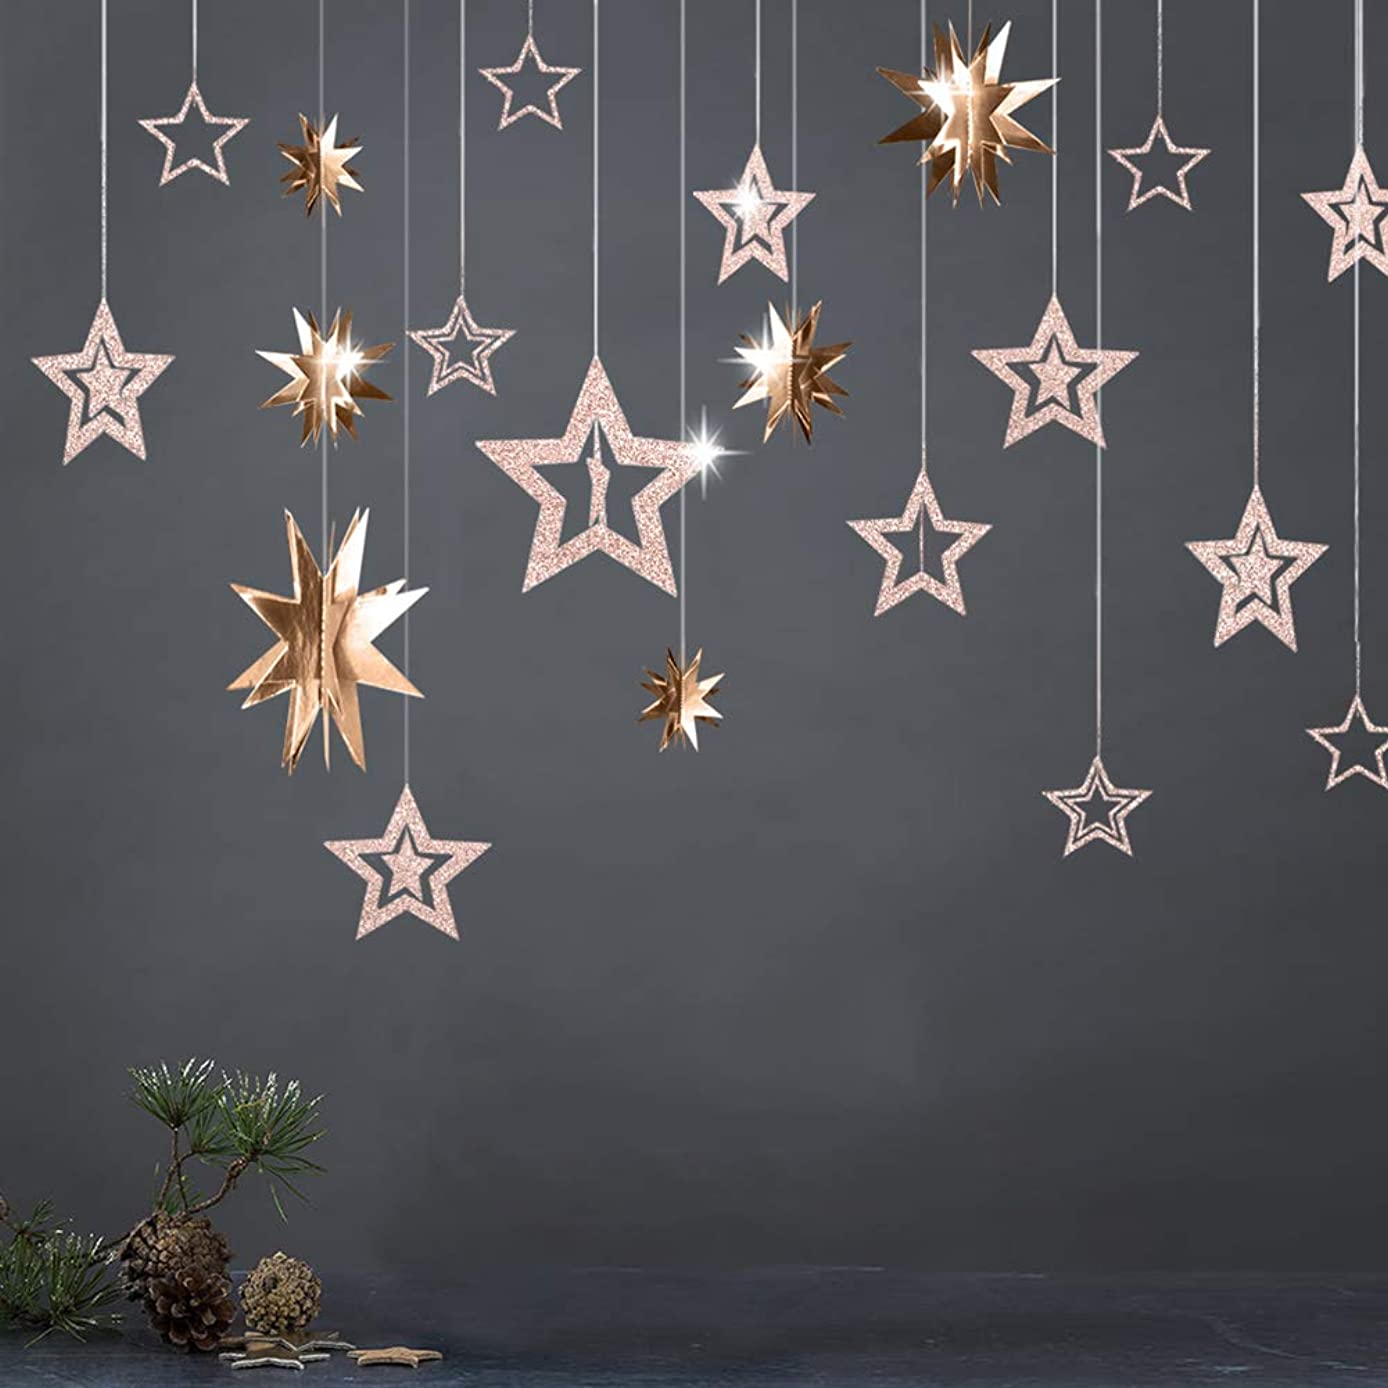 3D Champagne Gold Star Garland and Twinkle Little Star Cutout Hanging Decoration Bunting Banner Party Decor for Birthday/Baby Shower/Kids Boys Girls Room/Home/Christmas/New Year/Wedding Party Supply